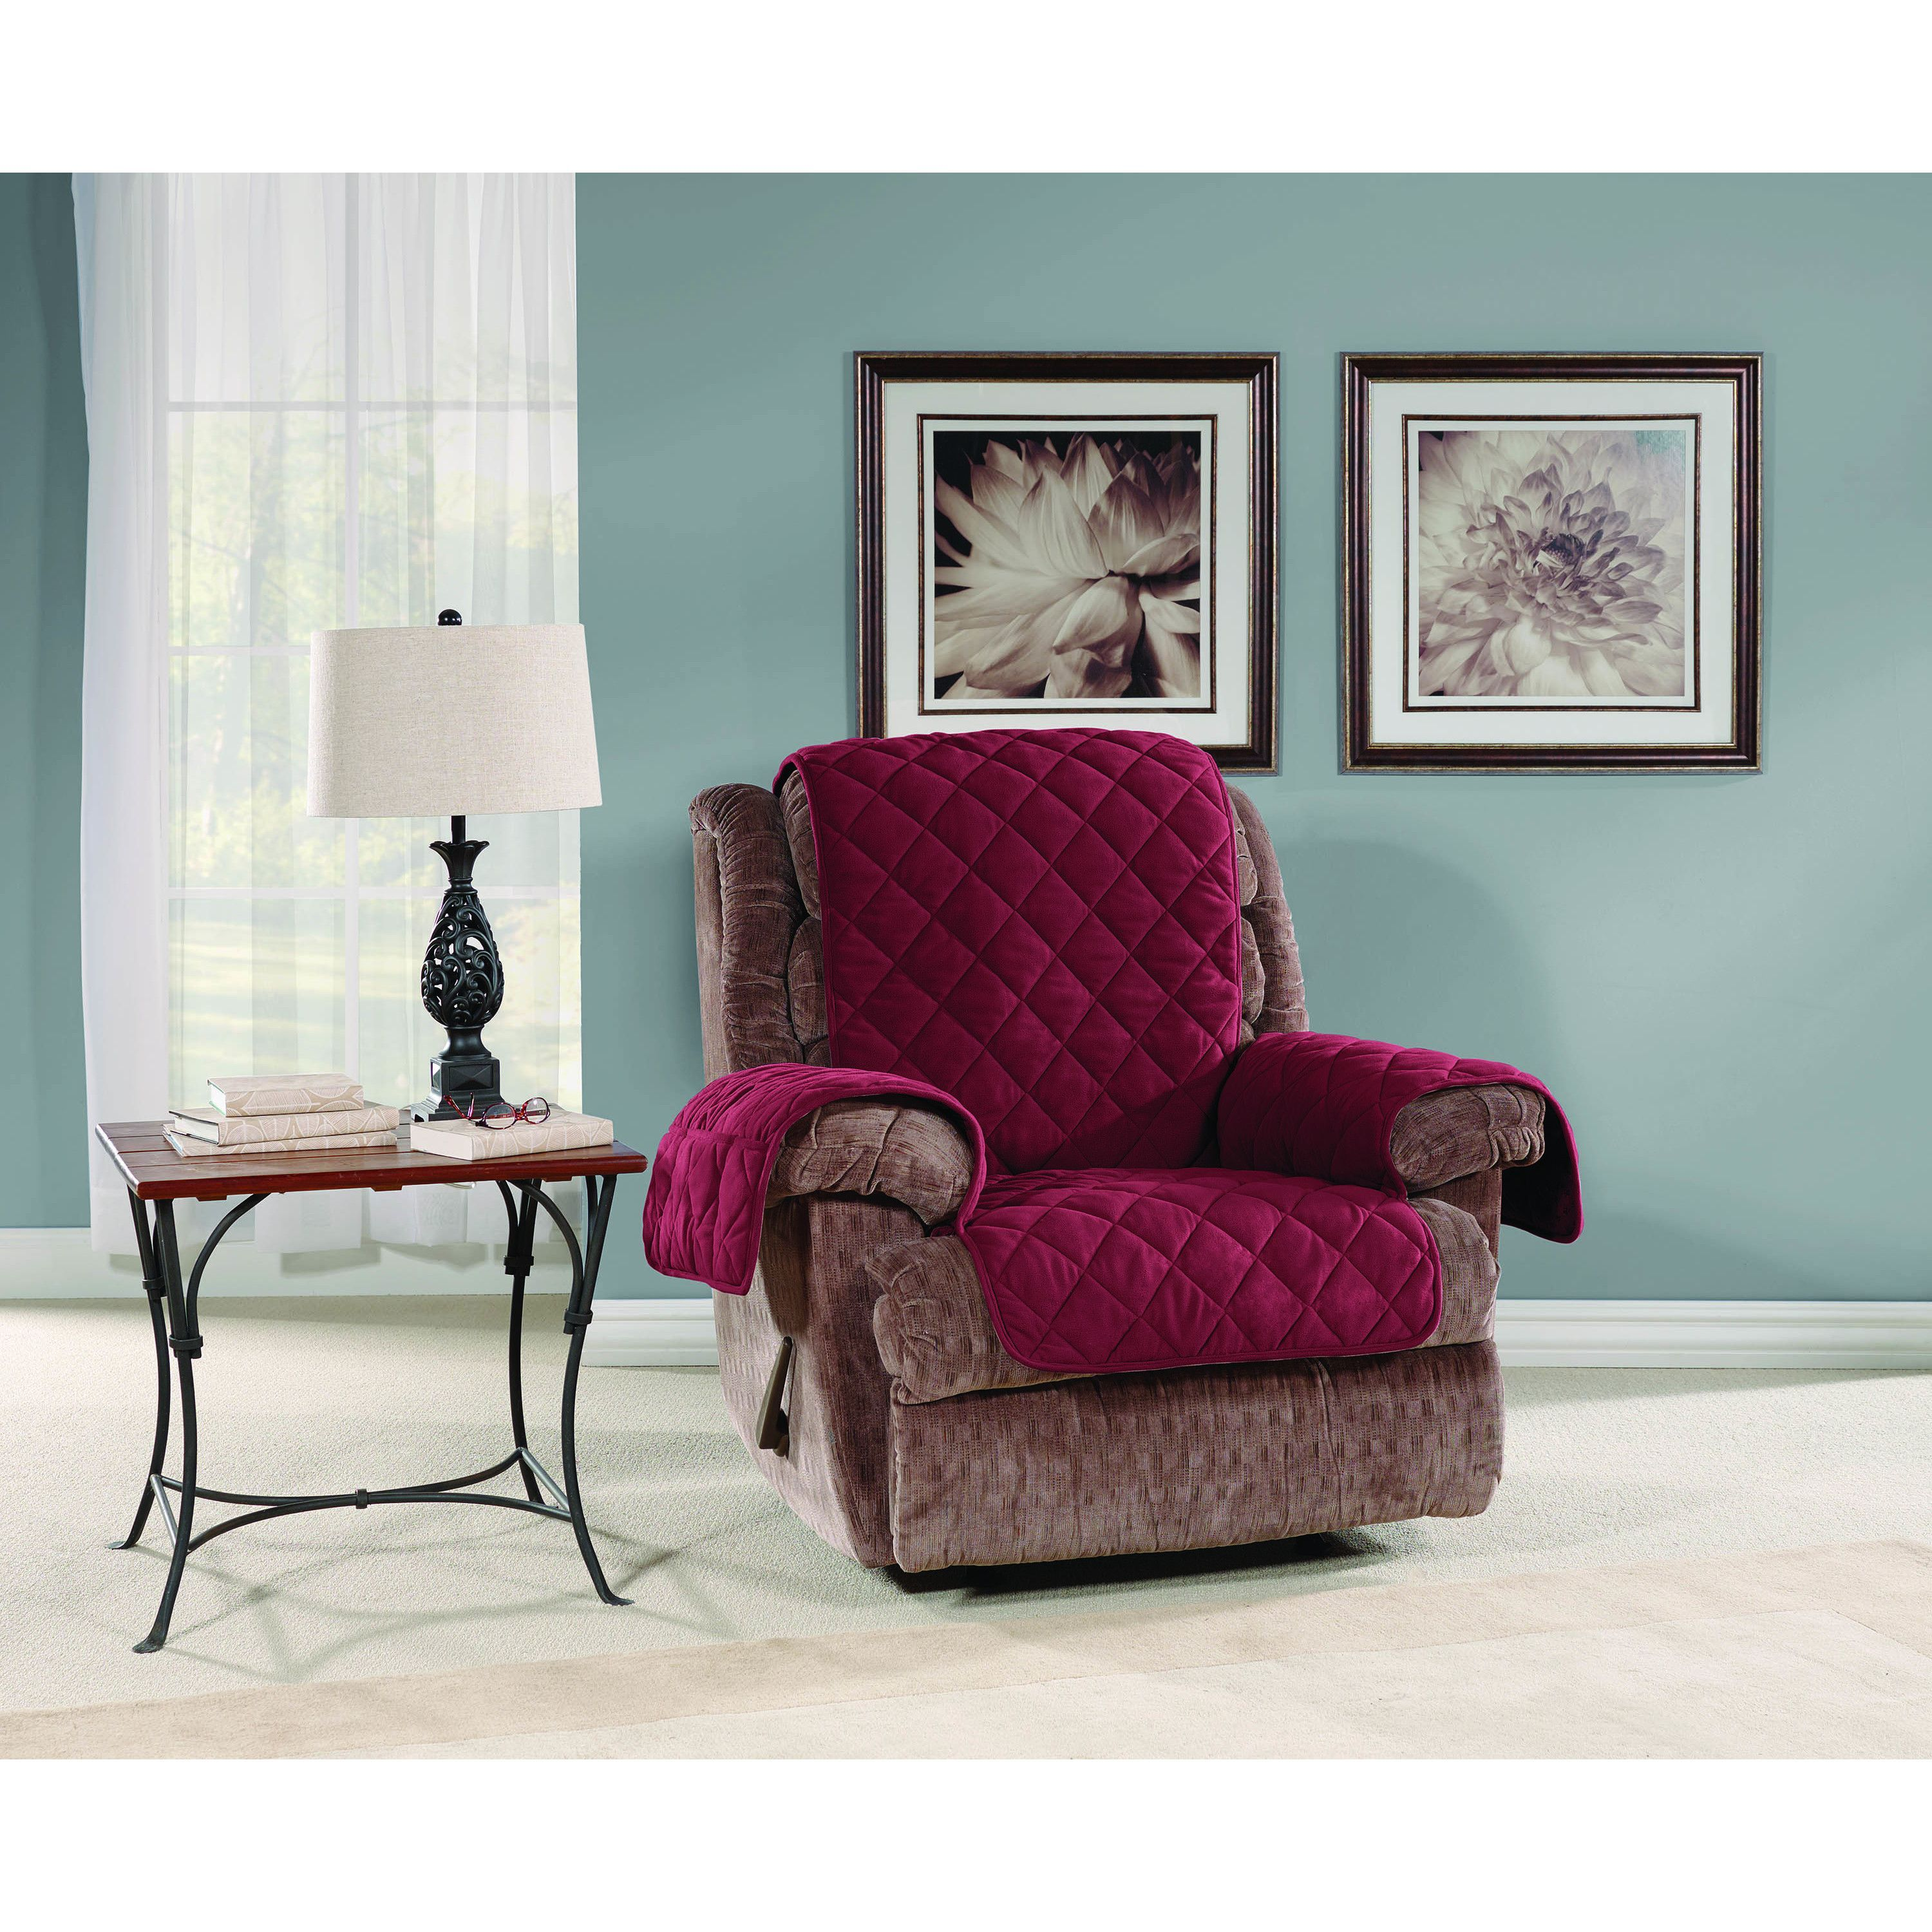 Burgundy dining room chair covers - Sure Fit Micro Fleece Recliner Furniture Protector Burgundy Red Solid